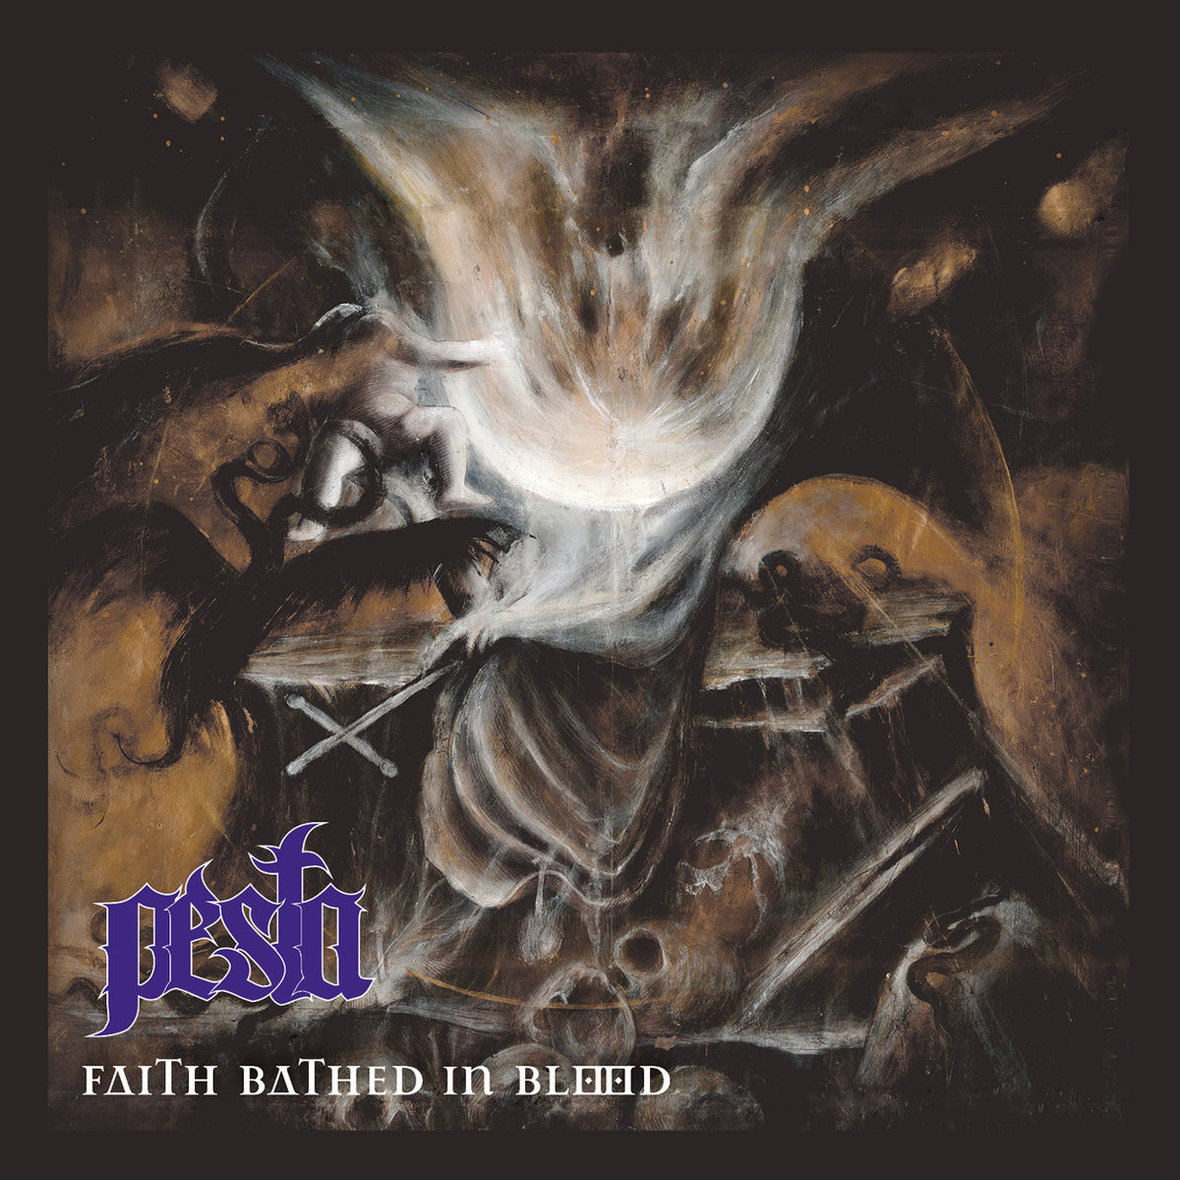 Pesta-Faith-Bathed-In-Blood